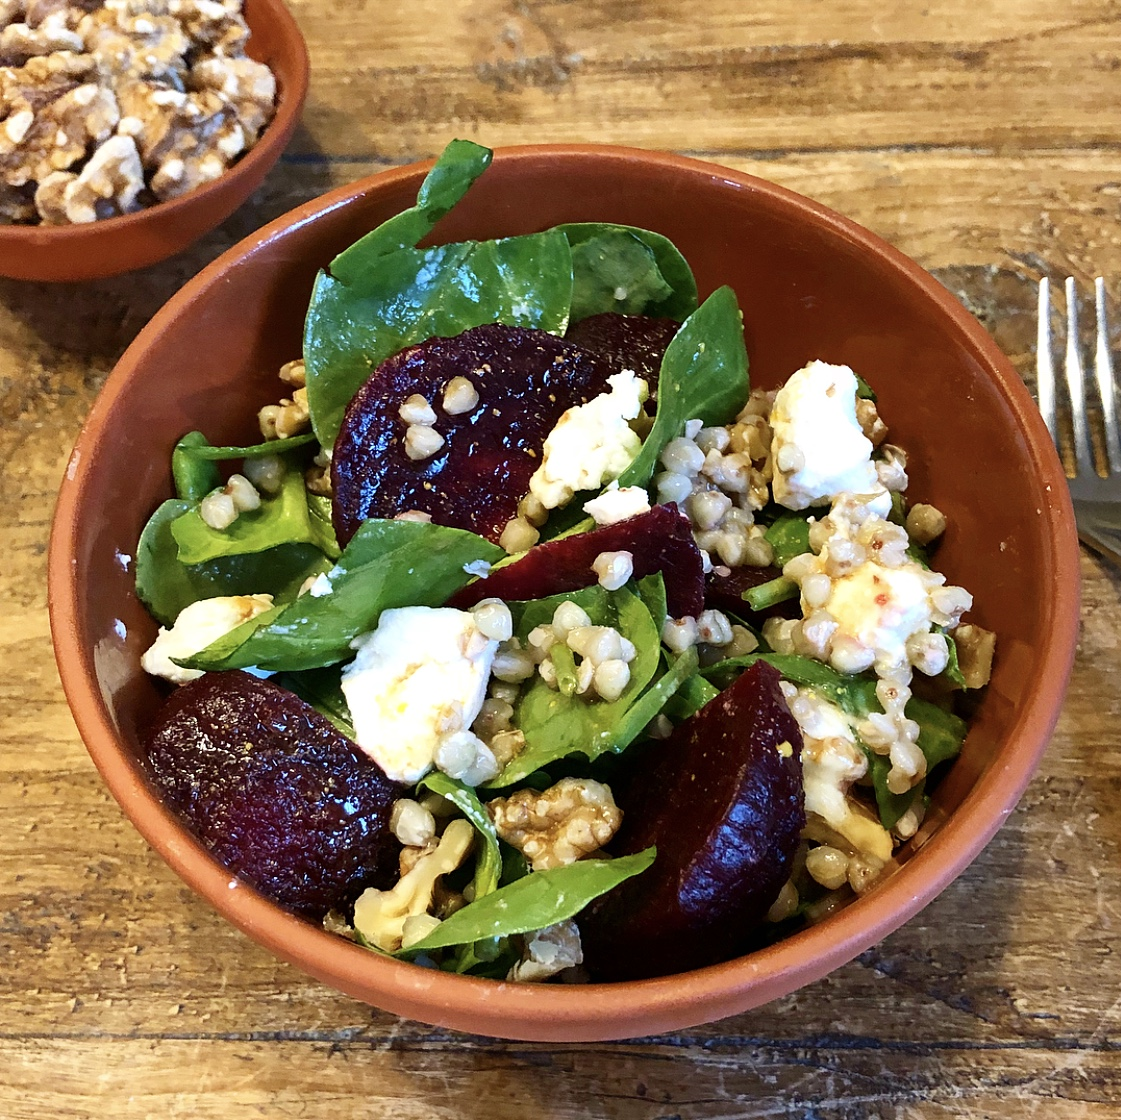 Beetroot and Goat's Cheese Salad with an Orange and Balsamic Dressing